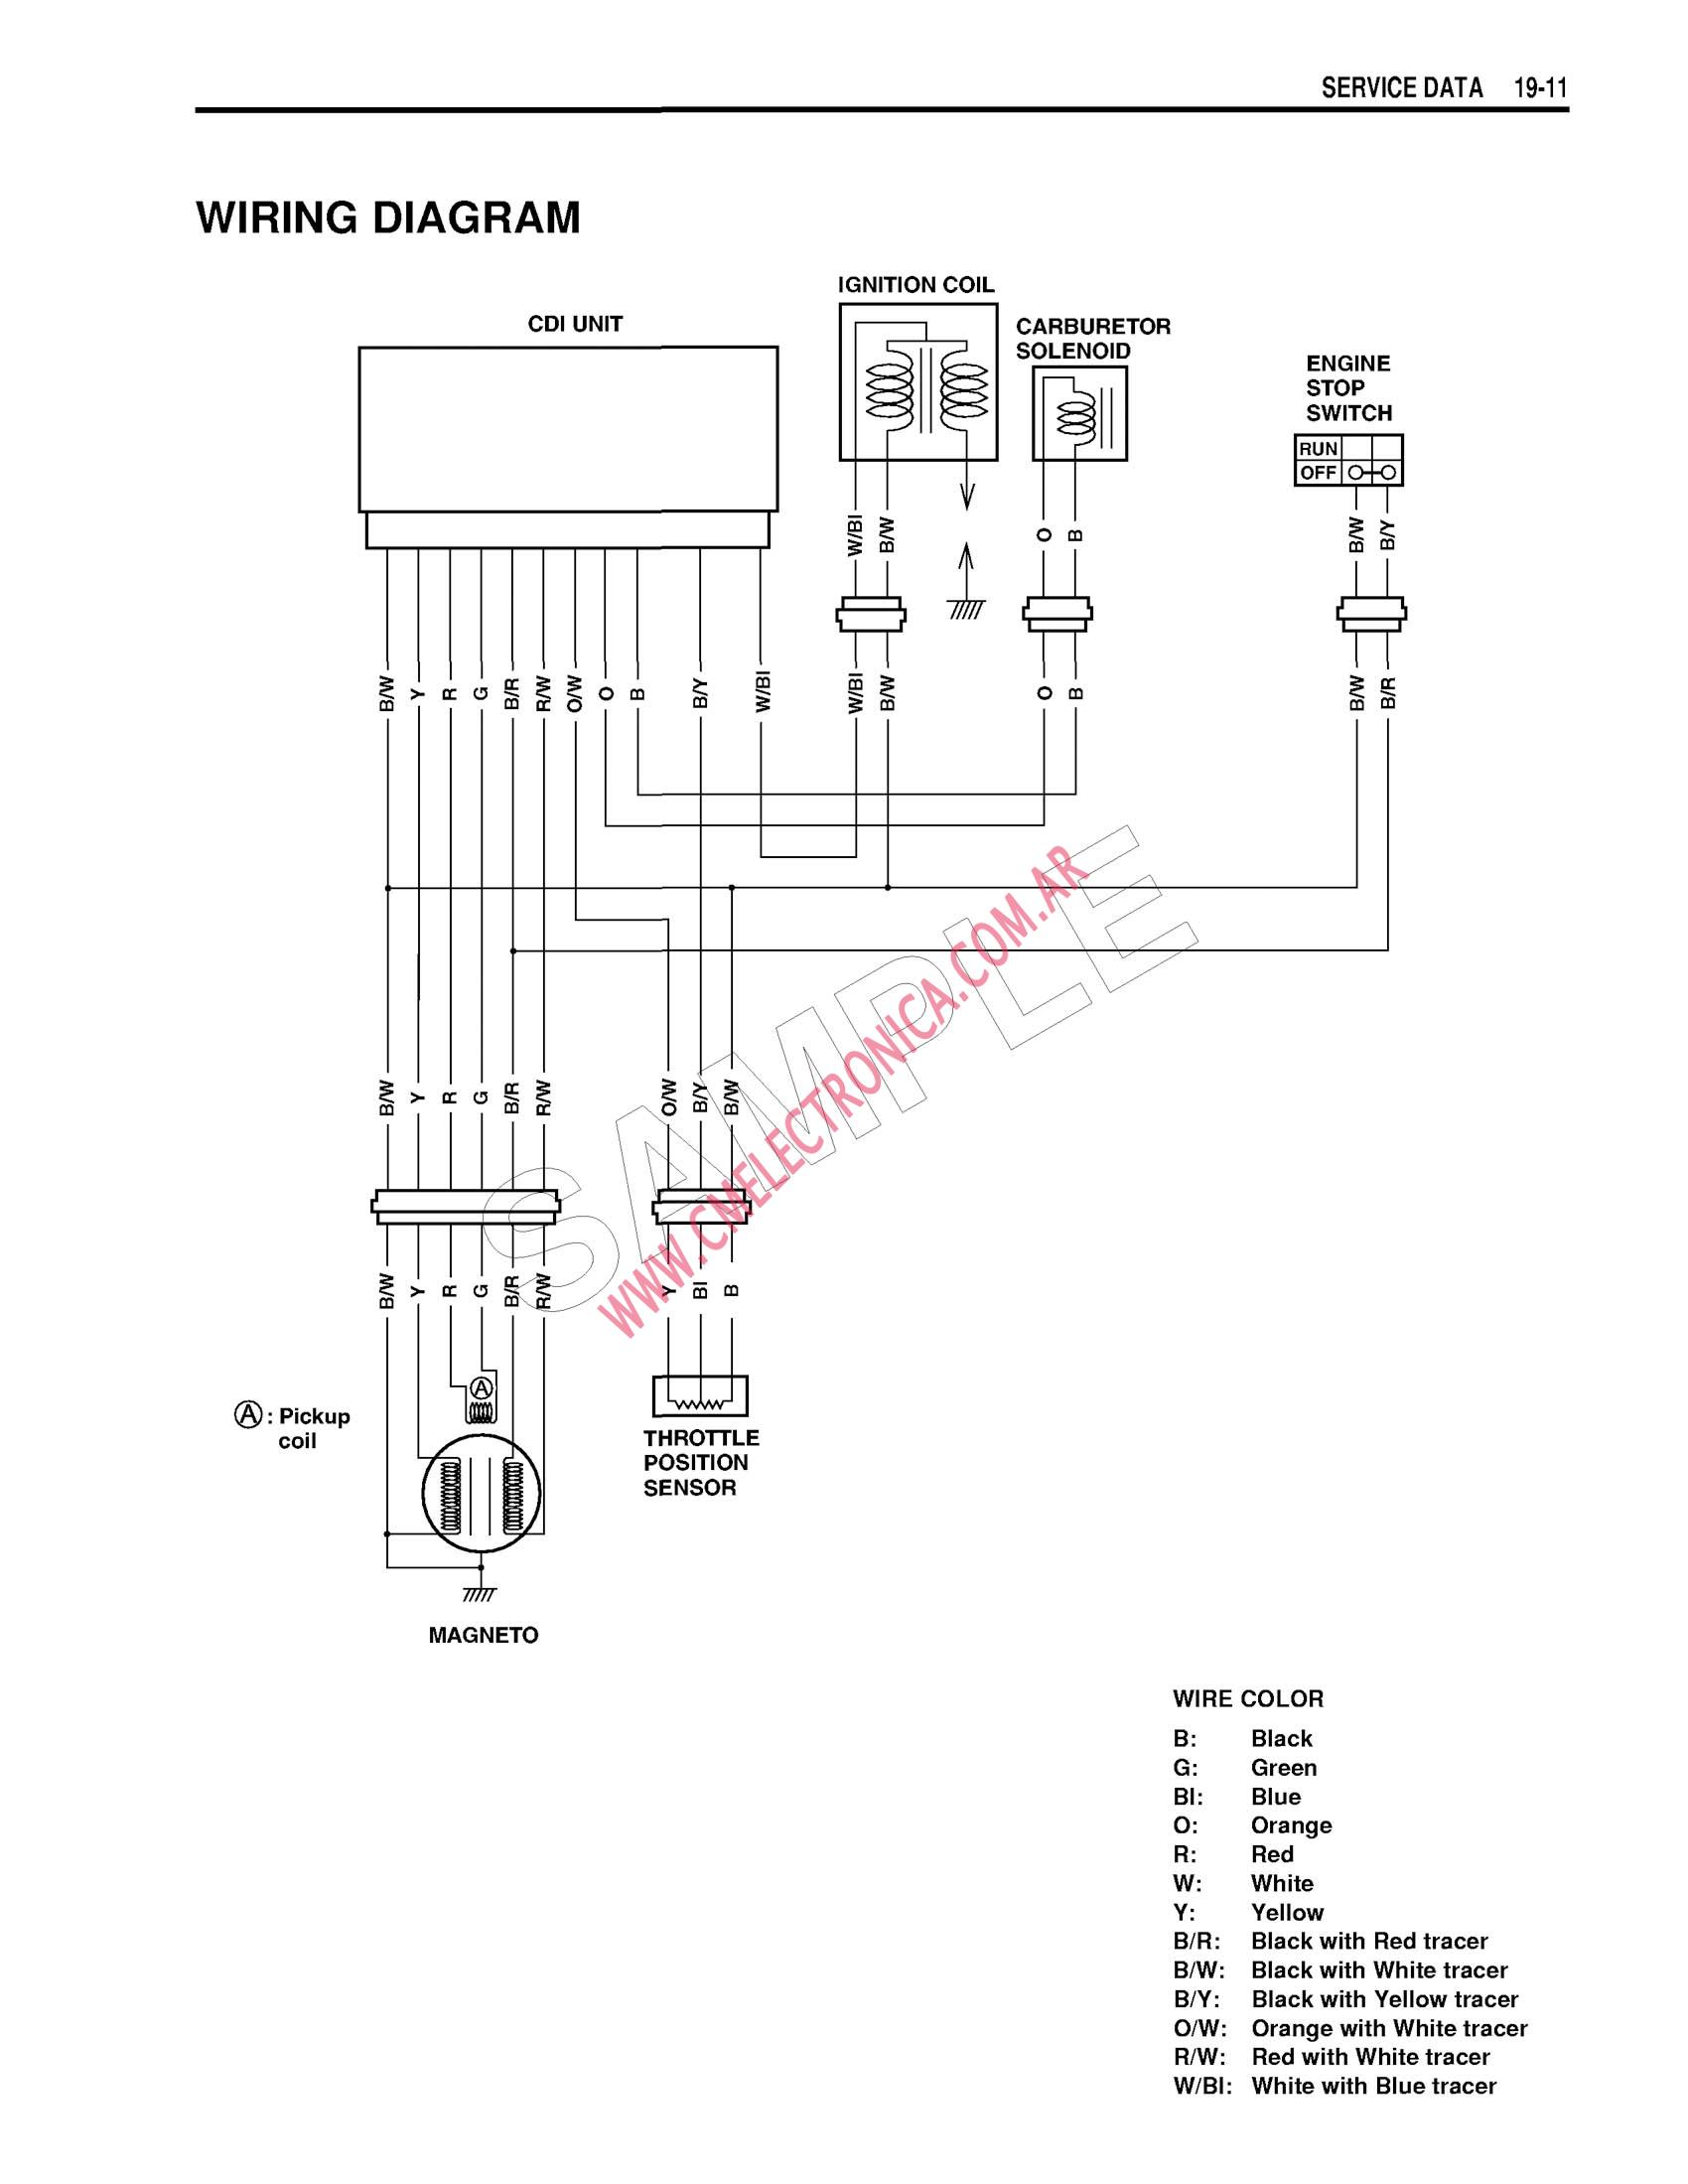 330 89 Rmx 250 Service Manual | Wiring LibraryWiring Library